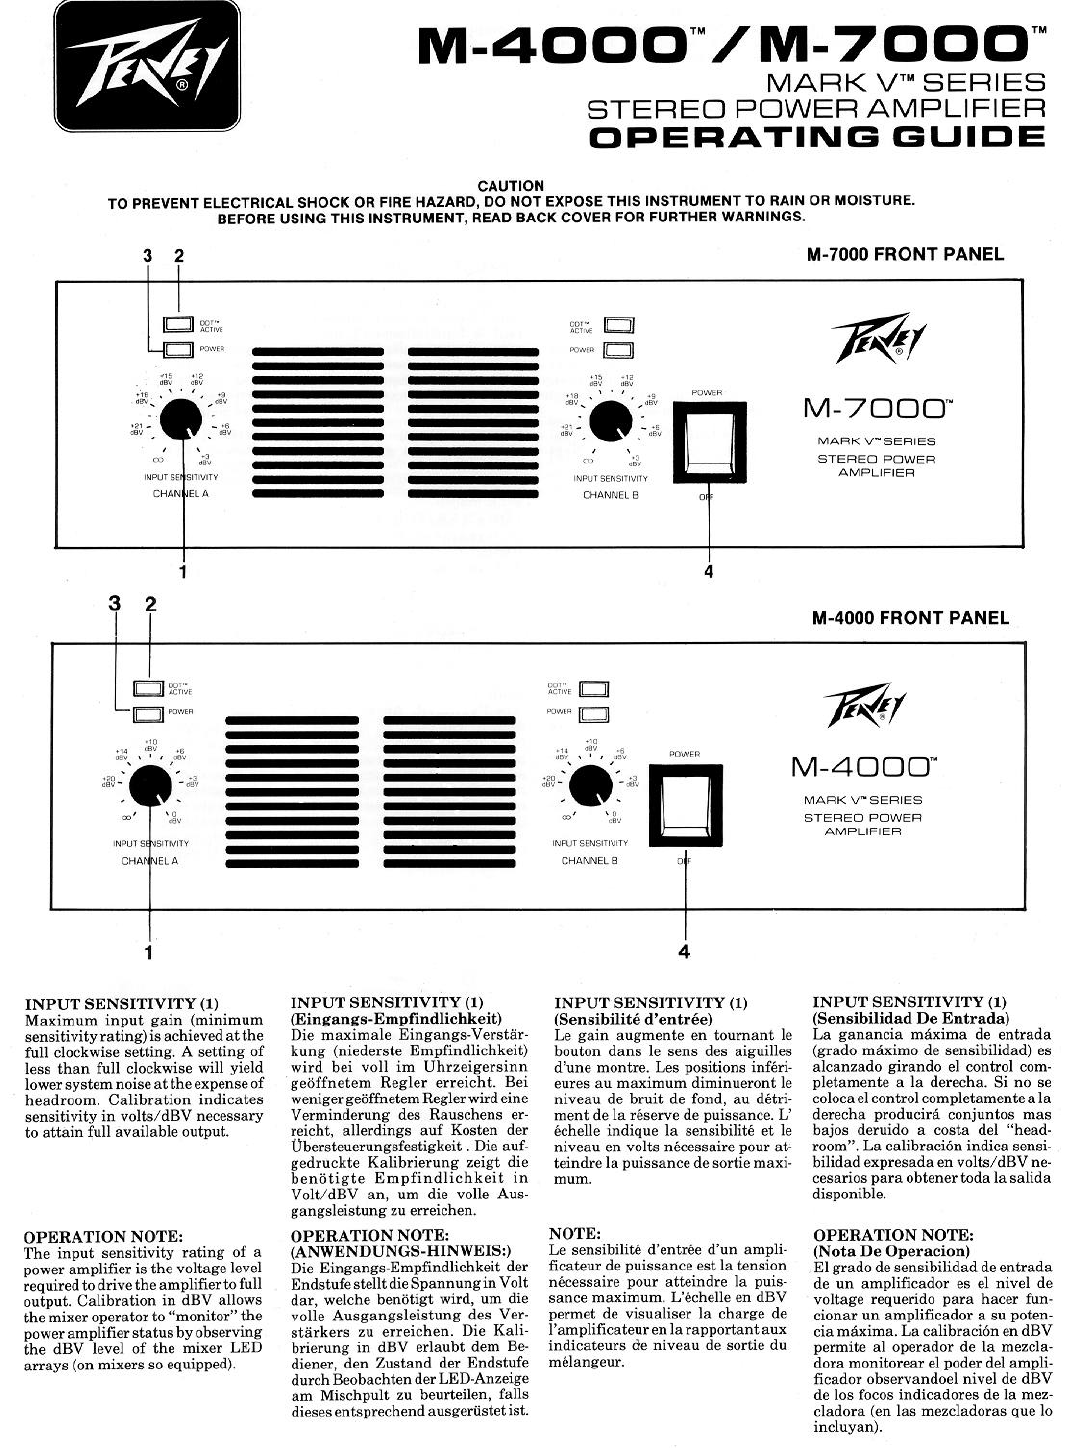 Car Amplifier Faq Manual Guide